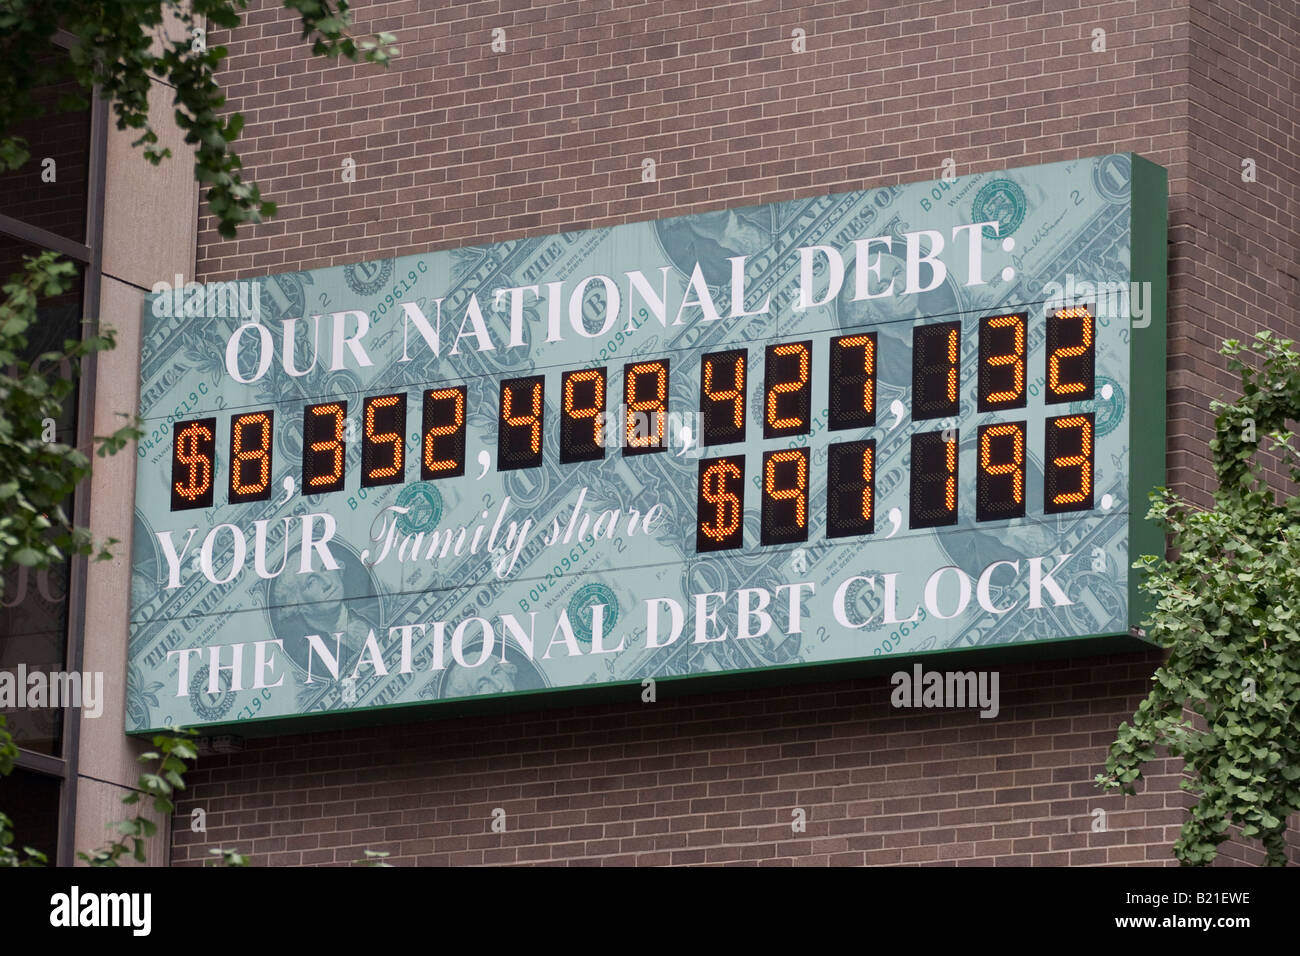 The National Debt Clock in Times Square, New York City New York August 15 2006 - Stock Image